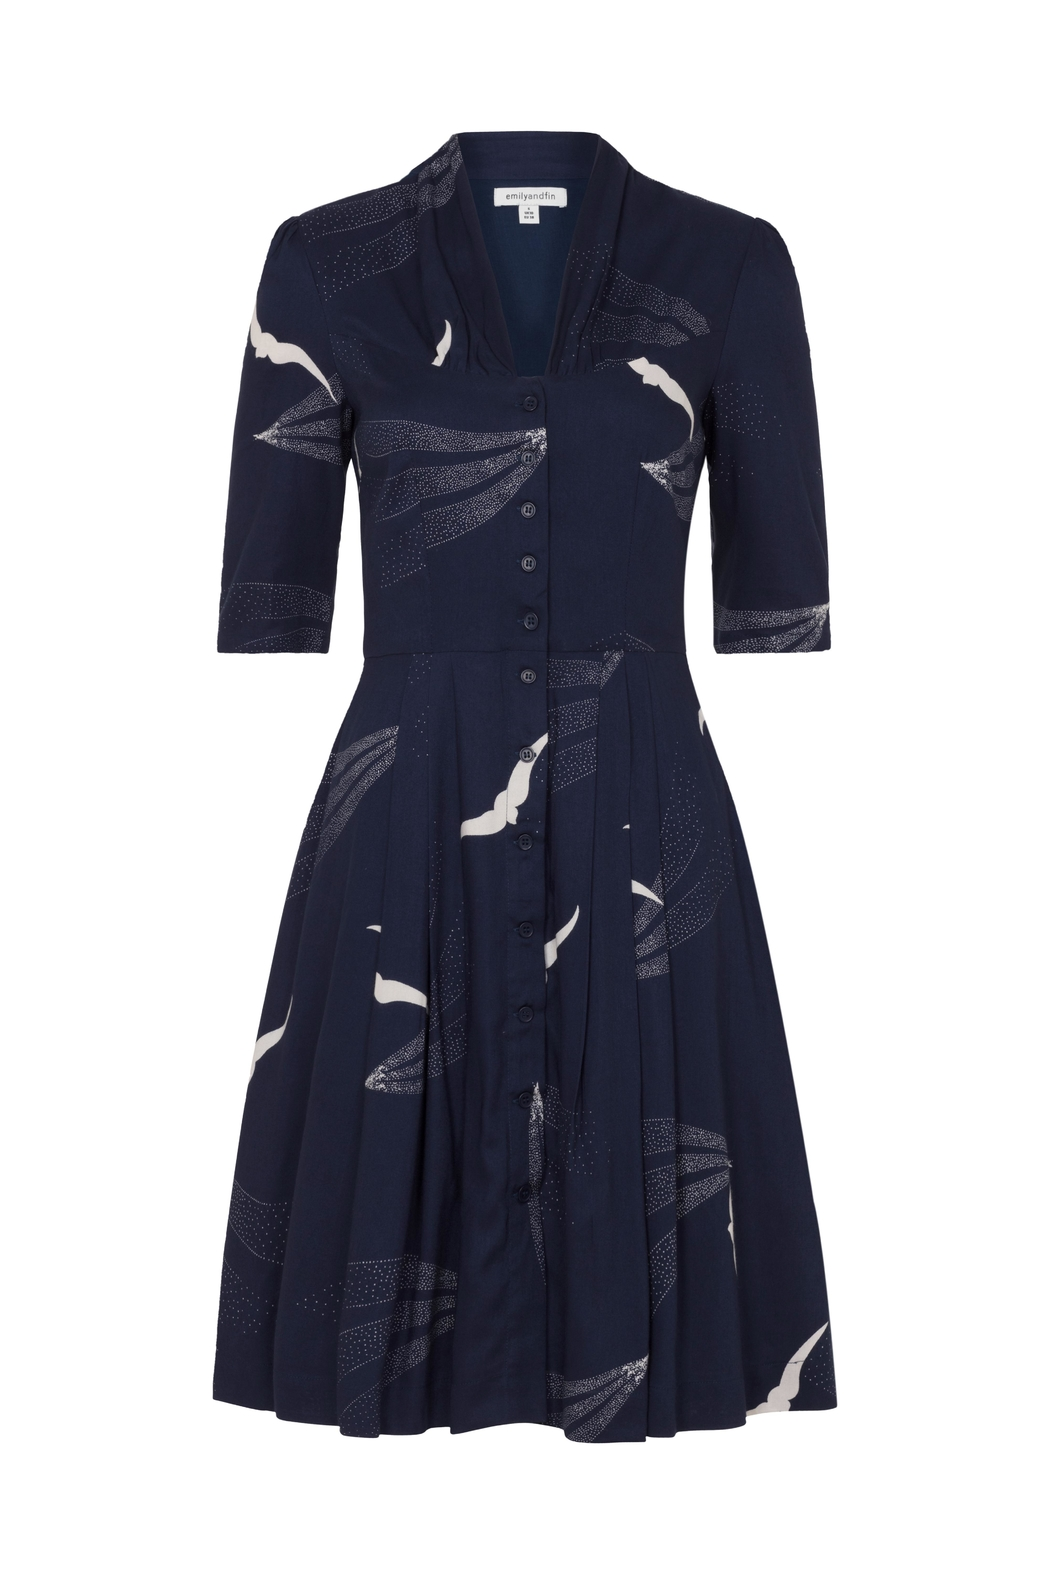 Emily & Fin Bird Button Down Dress - Front Cropped Image